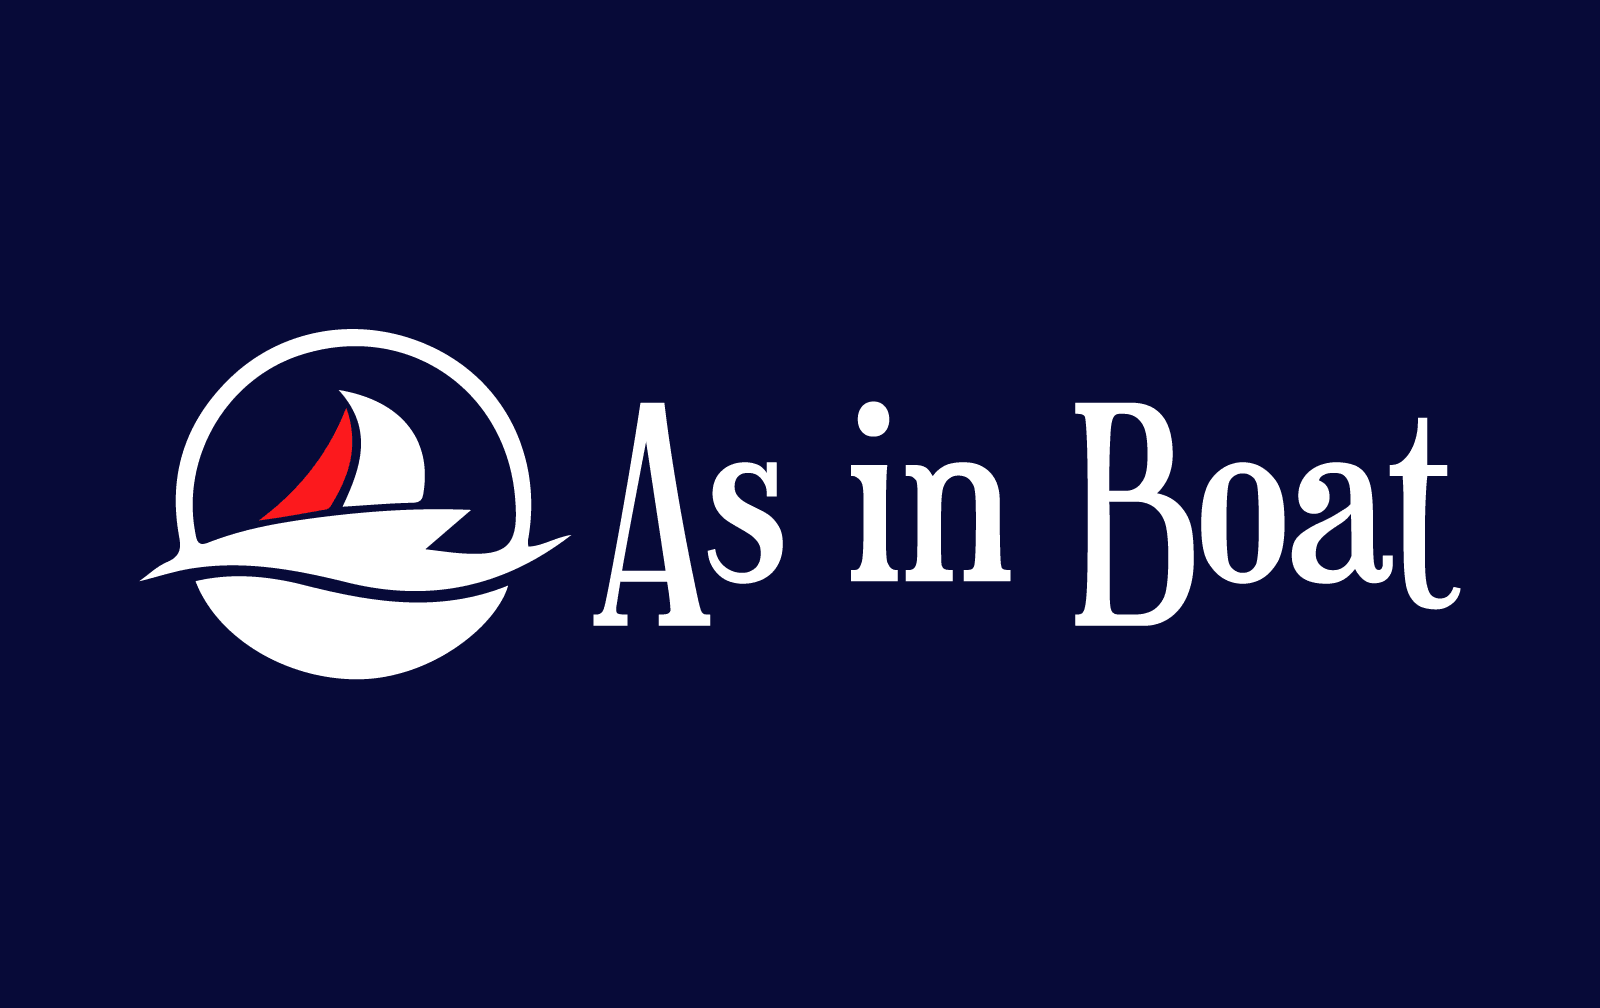 As in boat business card